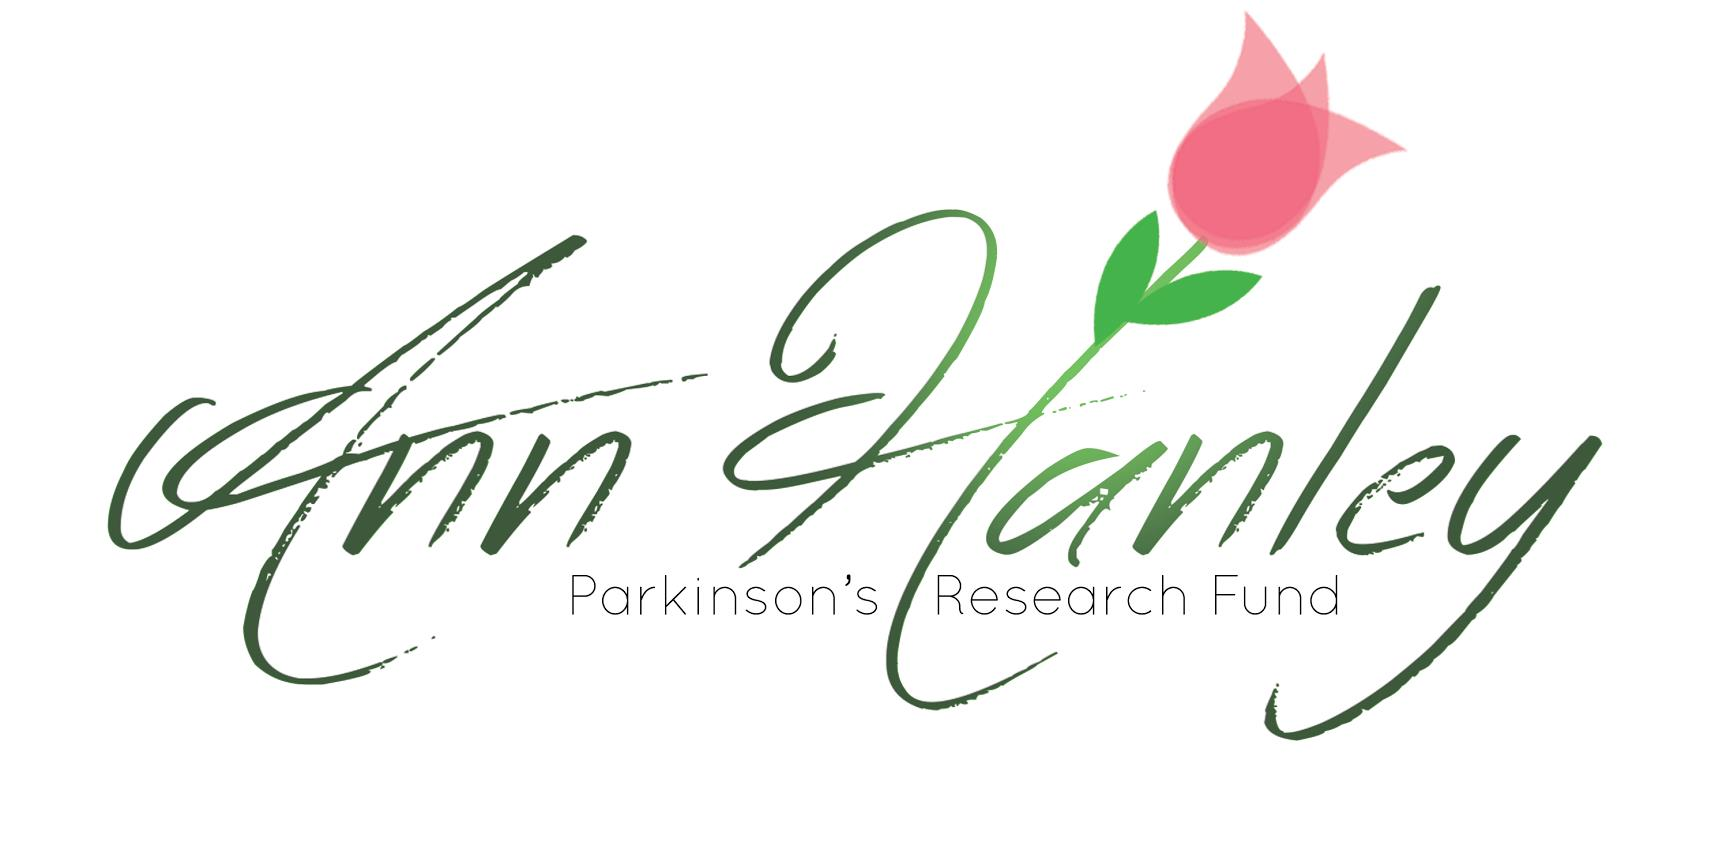 Fasig-Tipton, Coolmore, & WinStar team up to host party for Ann Hanley Parkinson's Research Fund title=